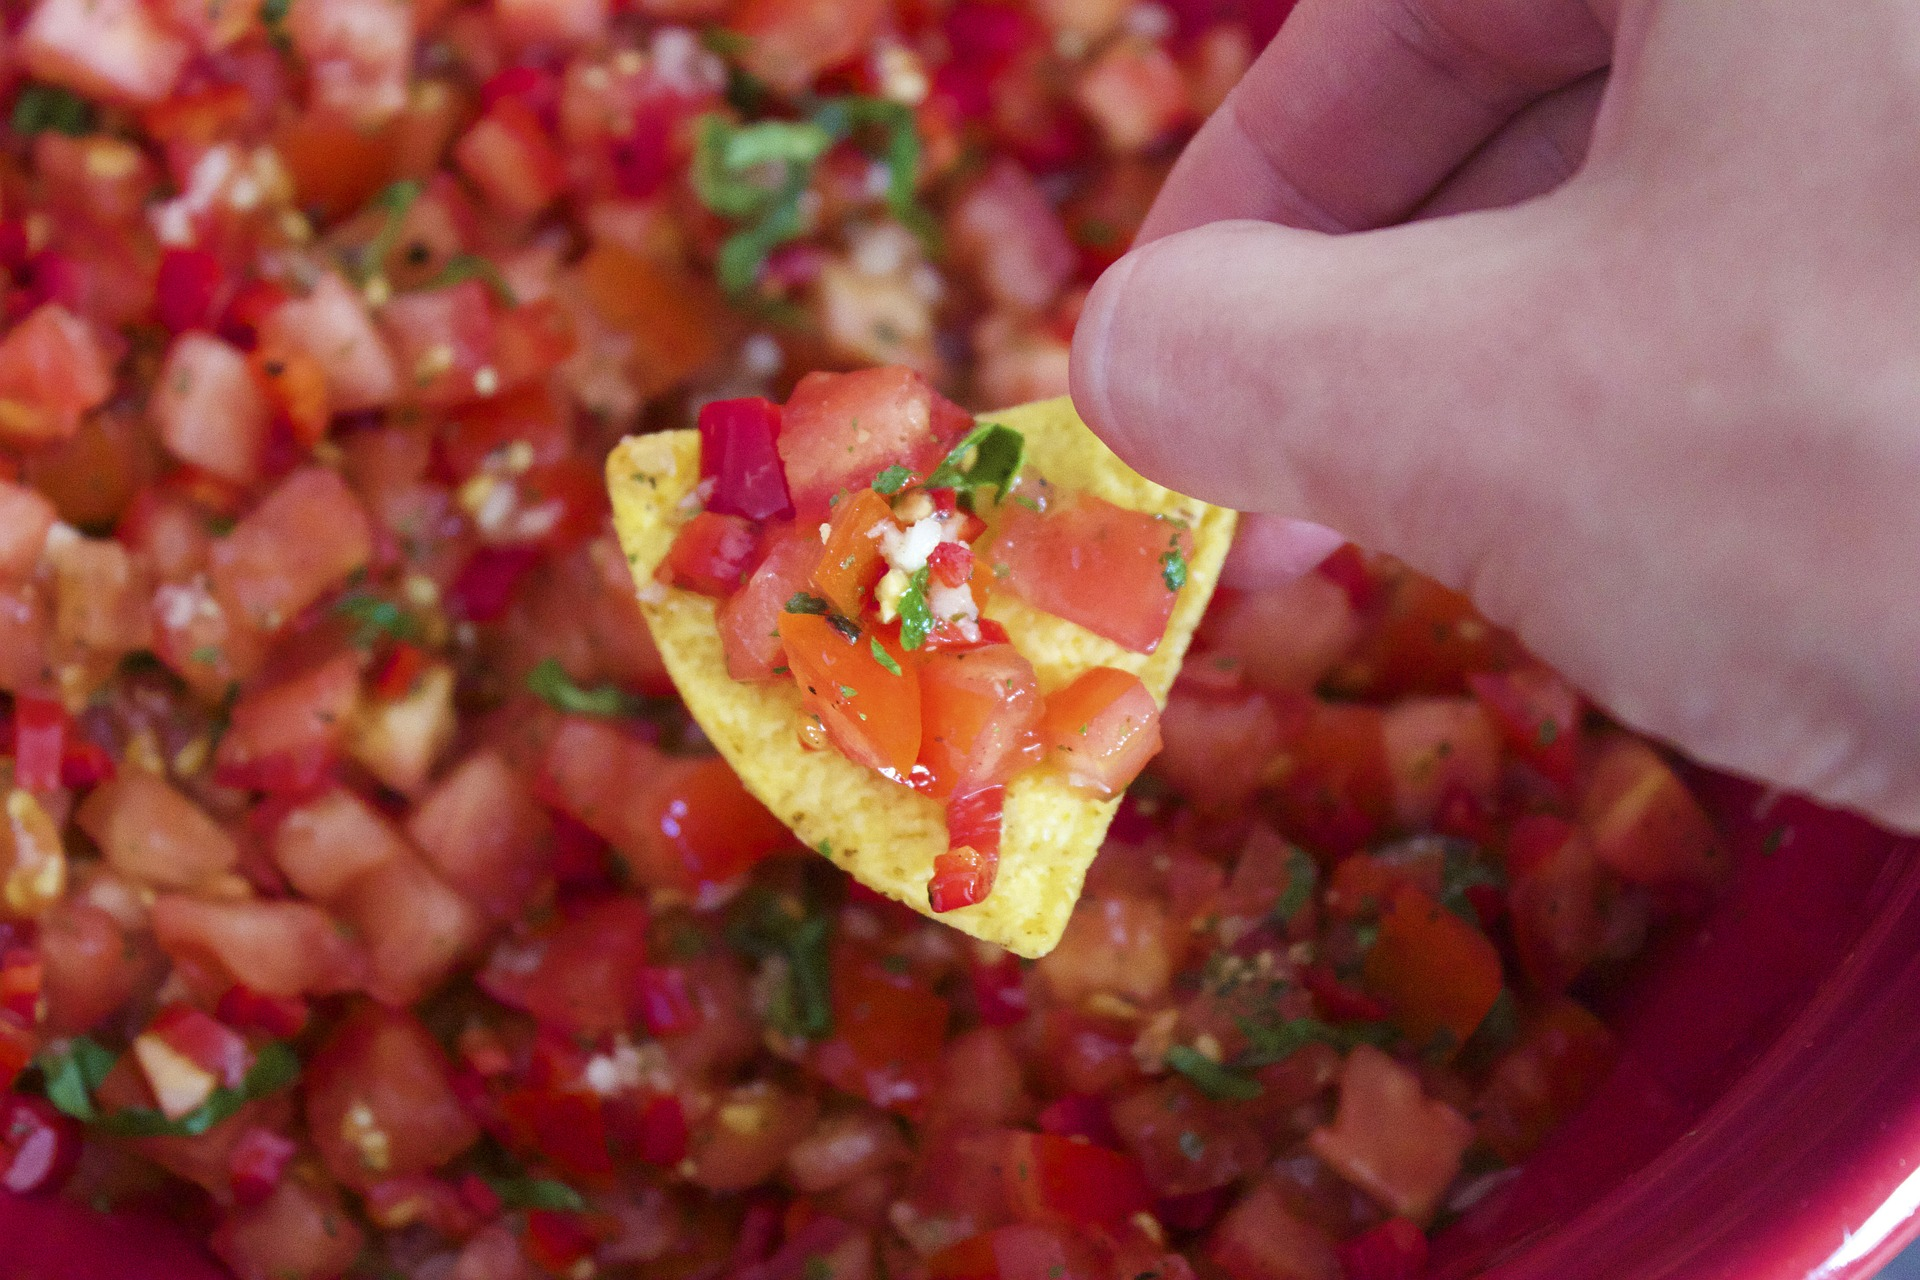 Vegetarian Nachos? Yes please! Try this tasty dish at Mother's Cafe and Garden.